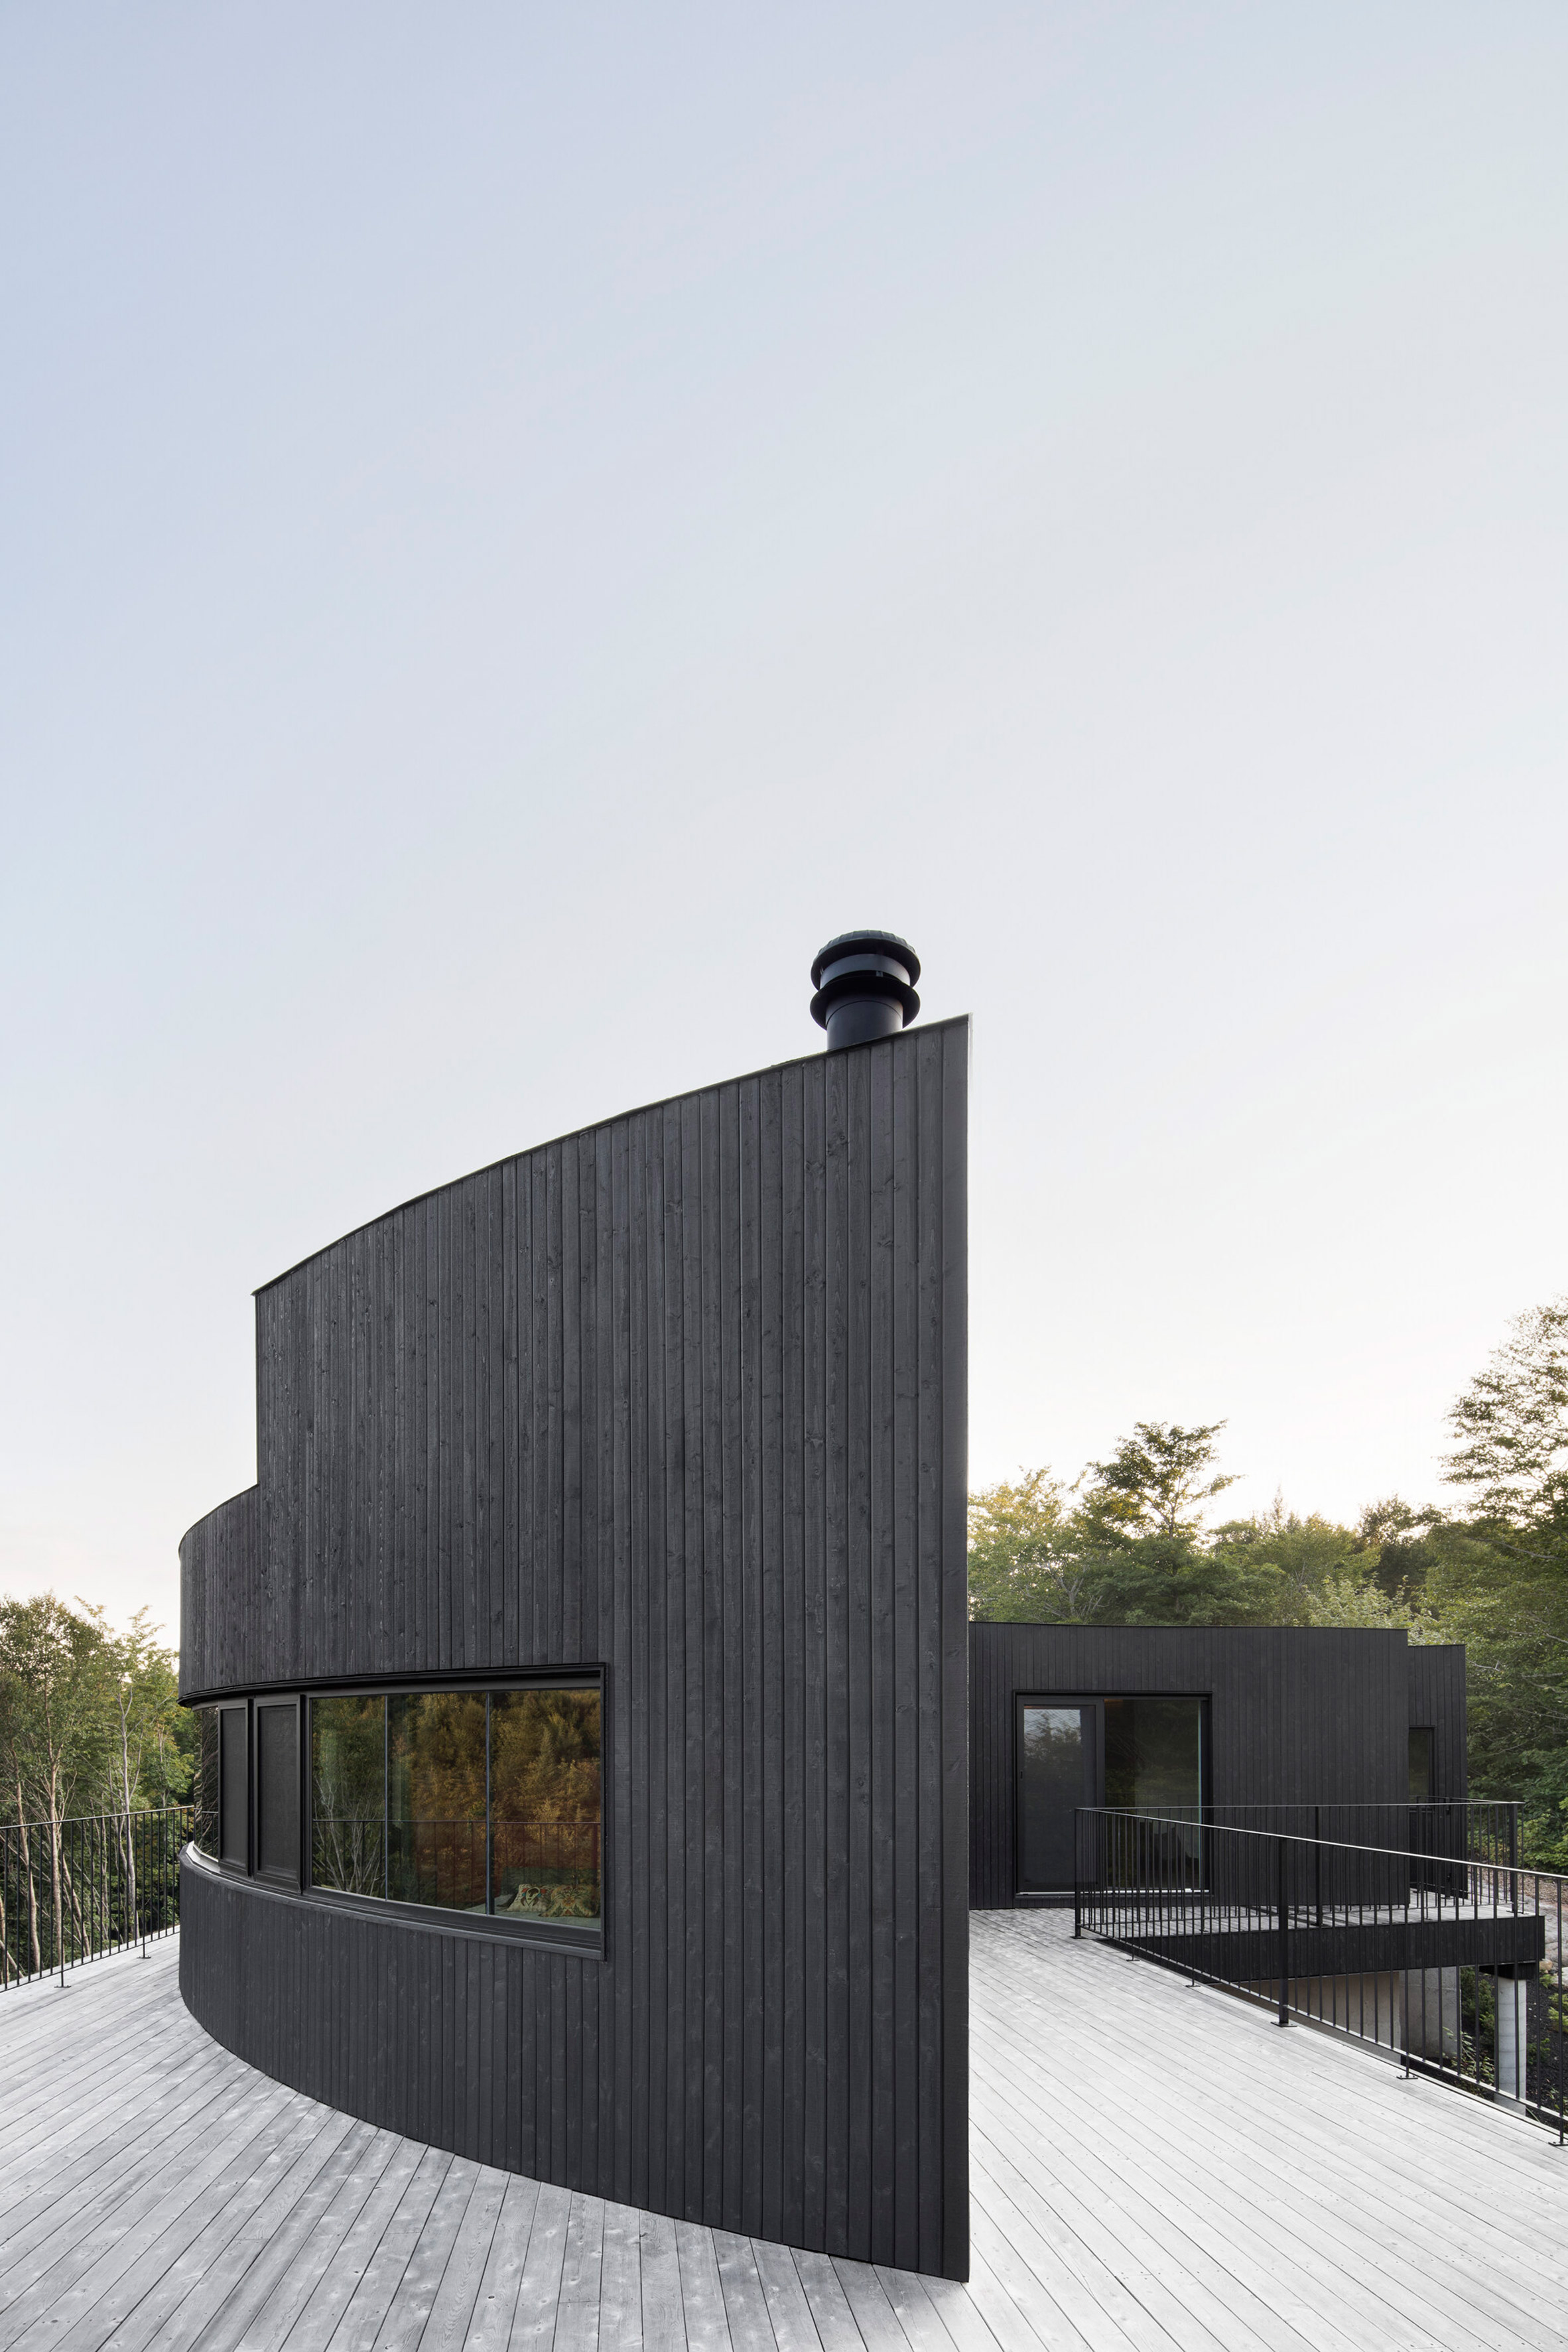 Expansive deck divides levels of Canadian cliffside house by Alain Carle